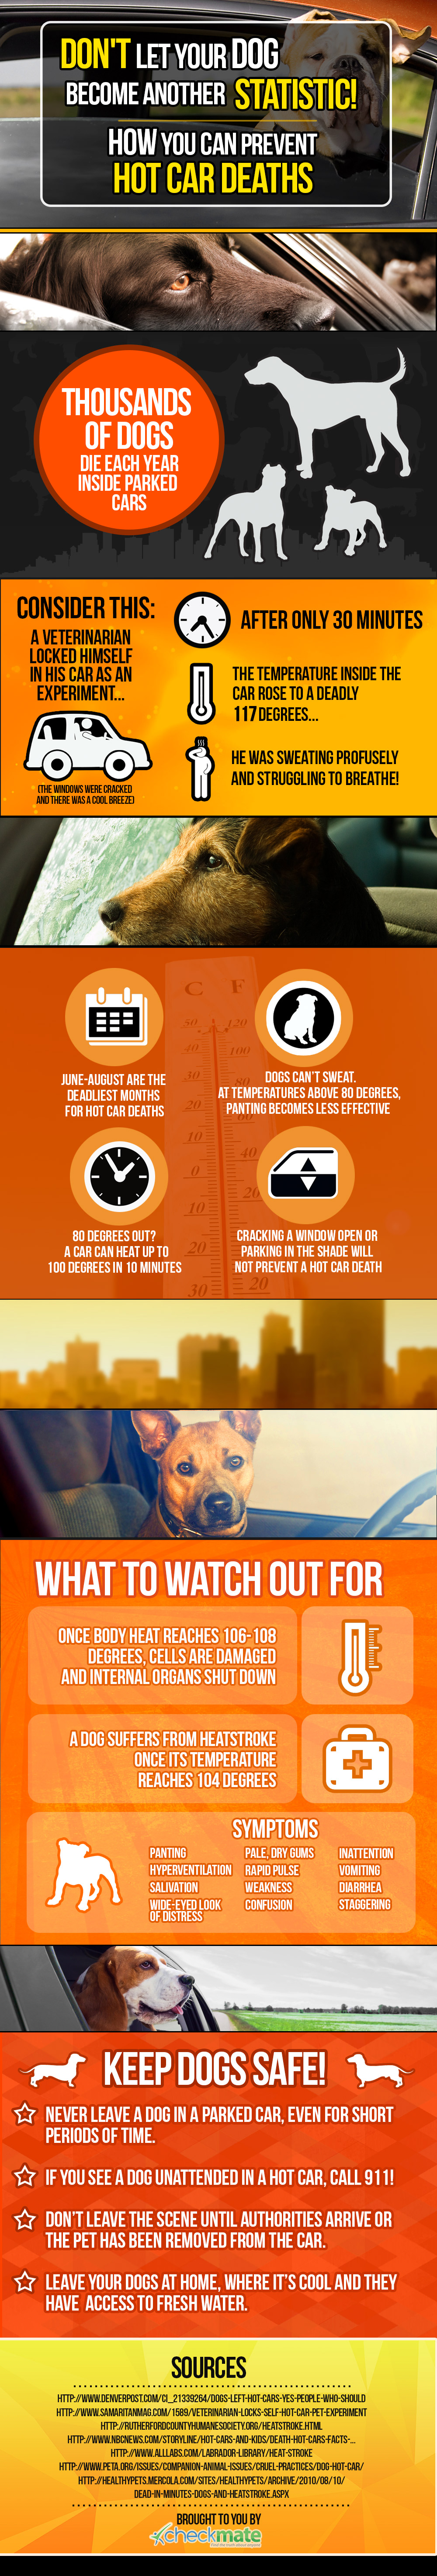 Dogs Are Dying in Hot Cars - How to Save Them [Infographic]